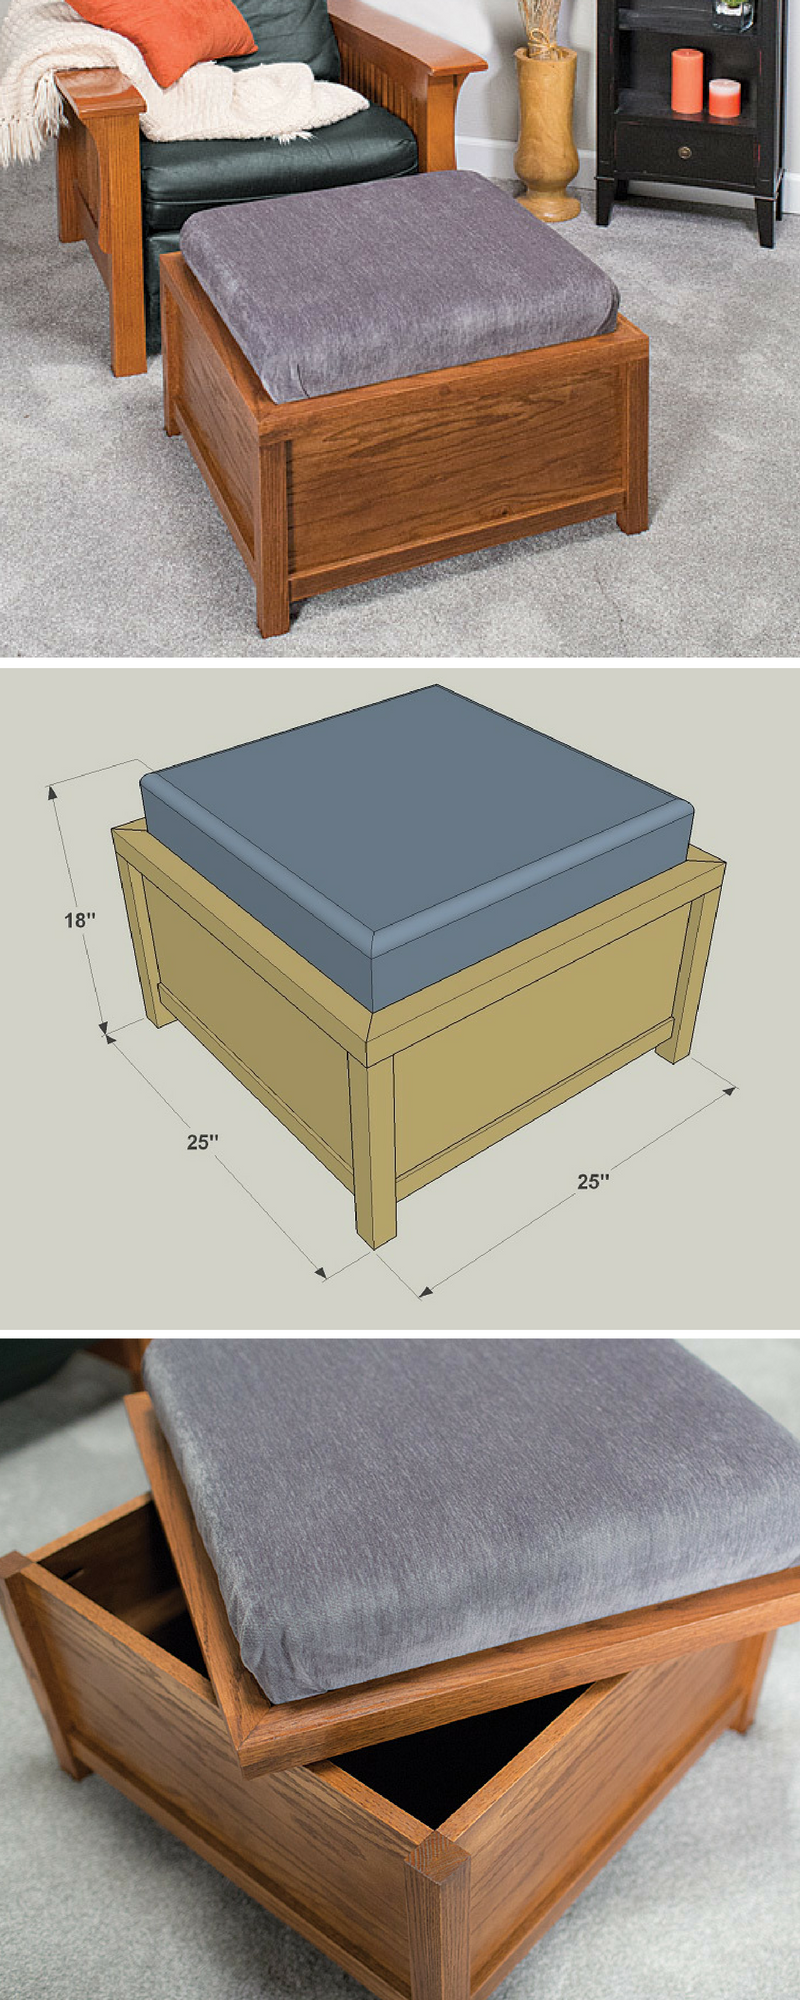 This Handsome Ottoman Provides A Great Place To Rest Your Feet And It Offers More Lift Off T Diy Storage Ottoman Diy Ottoman Diy Storage Ottoman Coffee Table